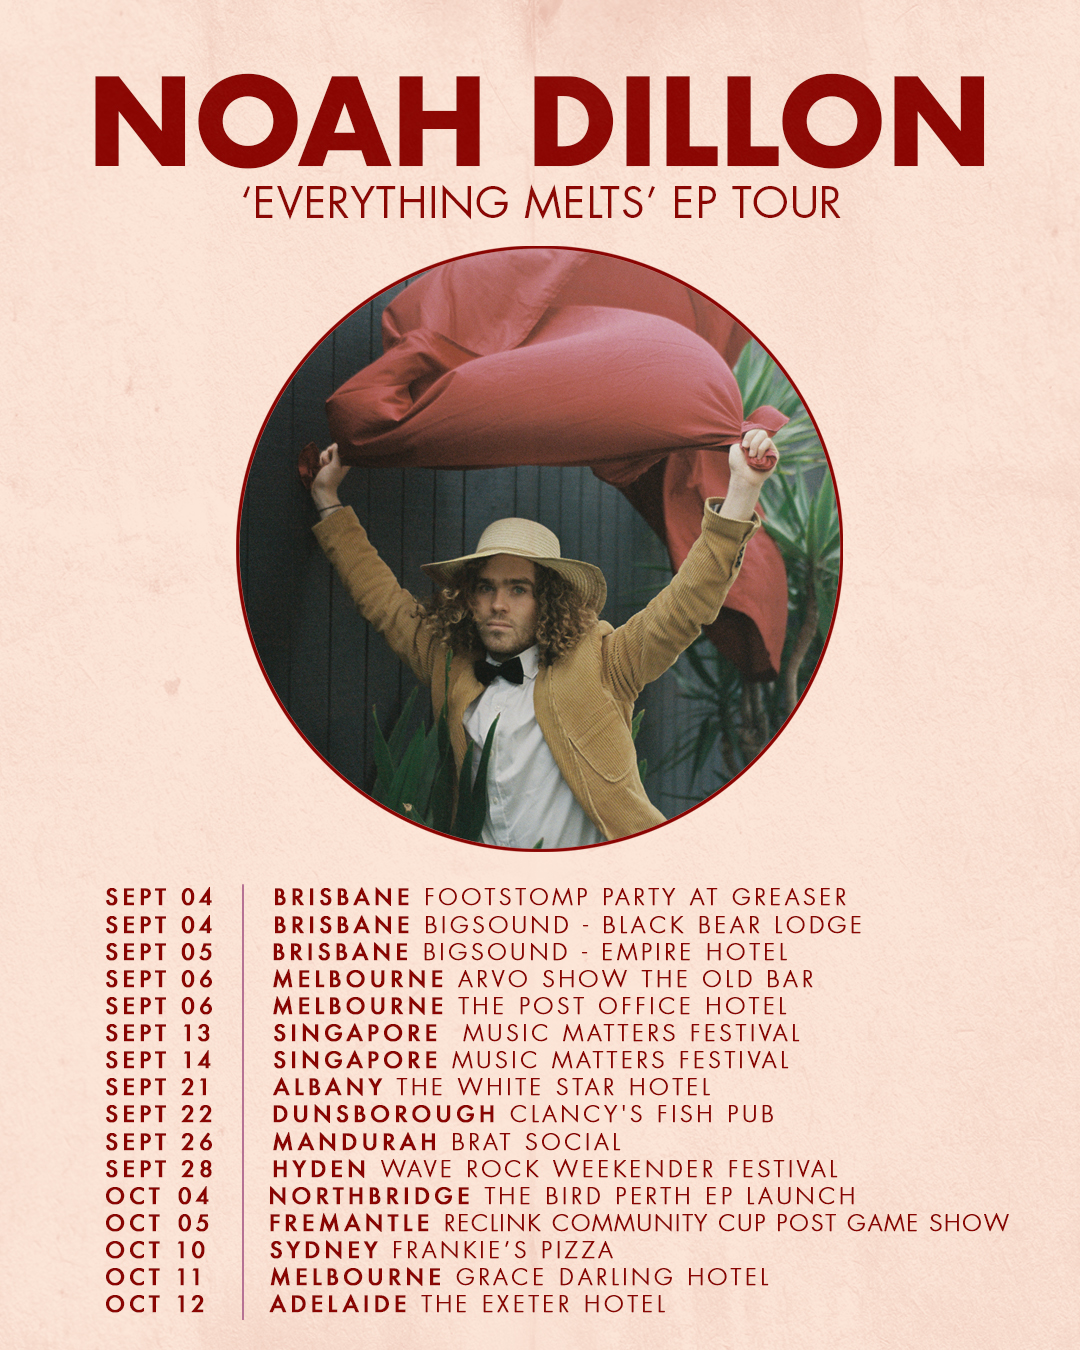 noah_dillon_sept_oct_tour_insta_poster copy.jpg